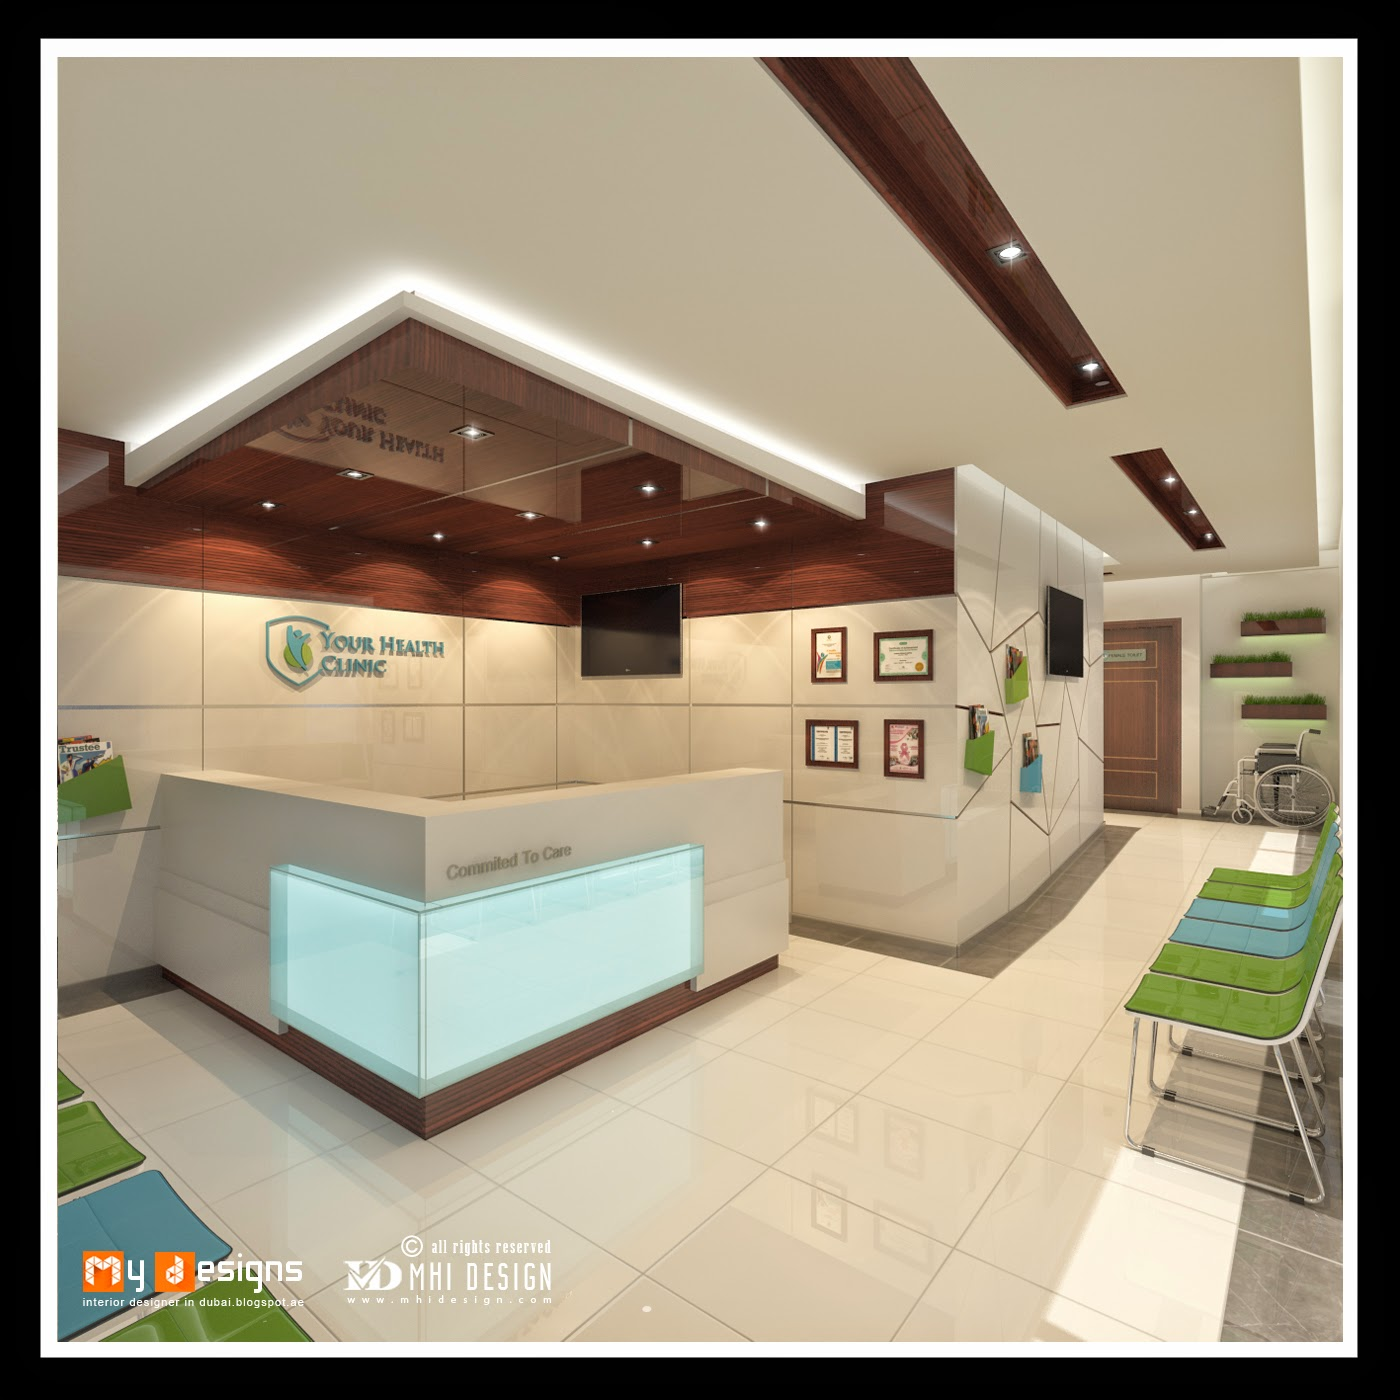 You Can Choose More Dubai Health Clinic Interior Designs Images